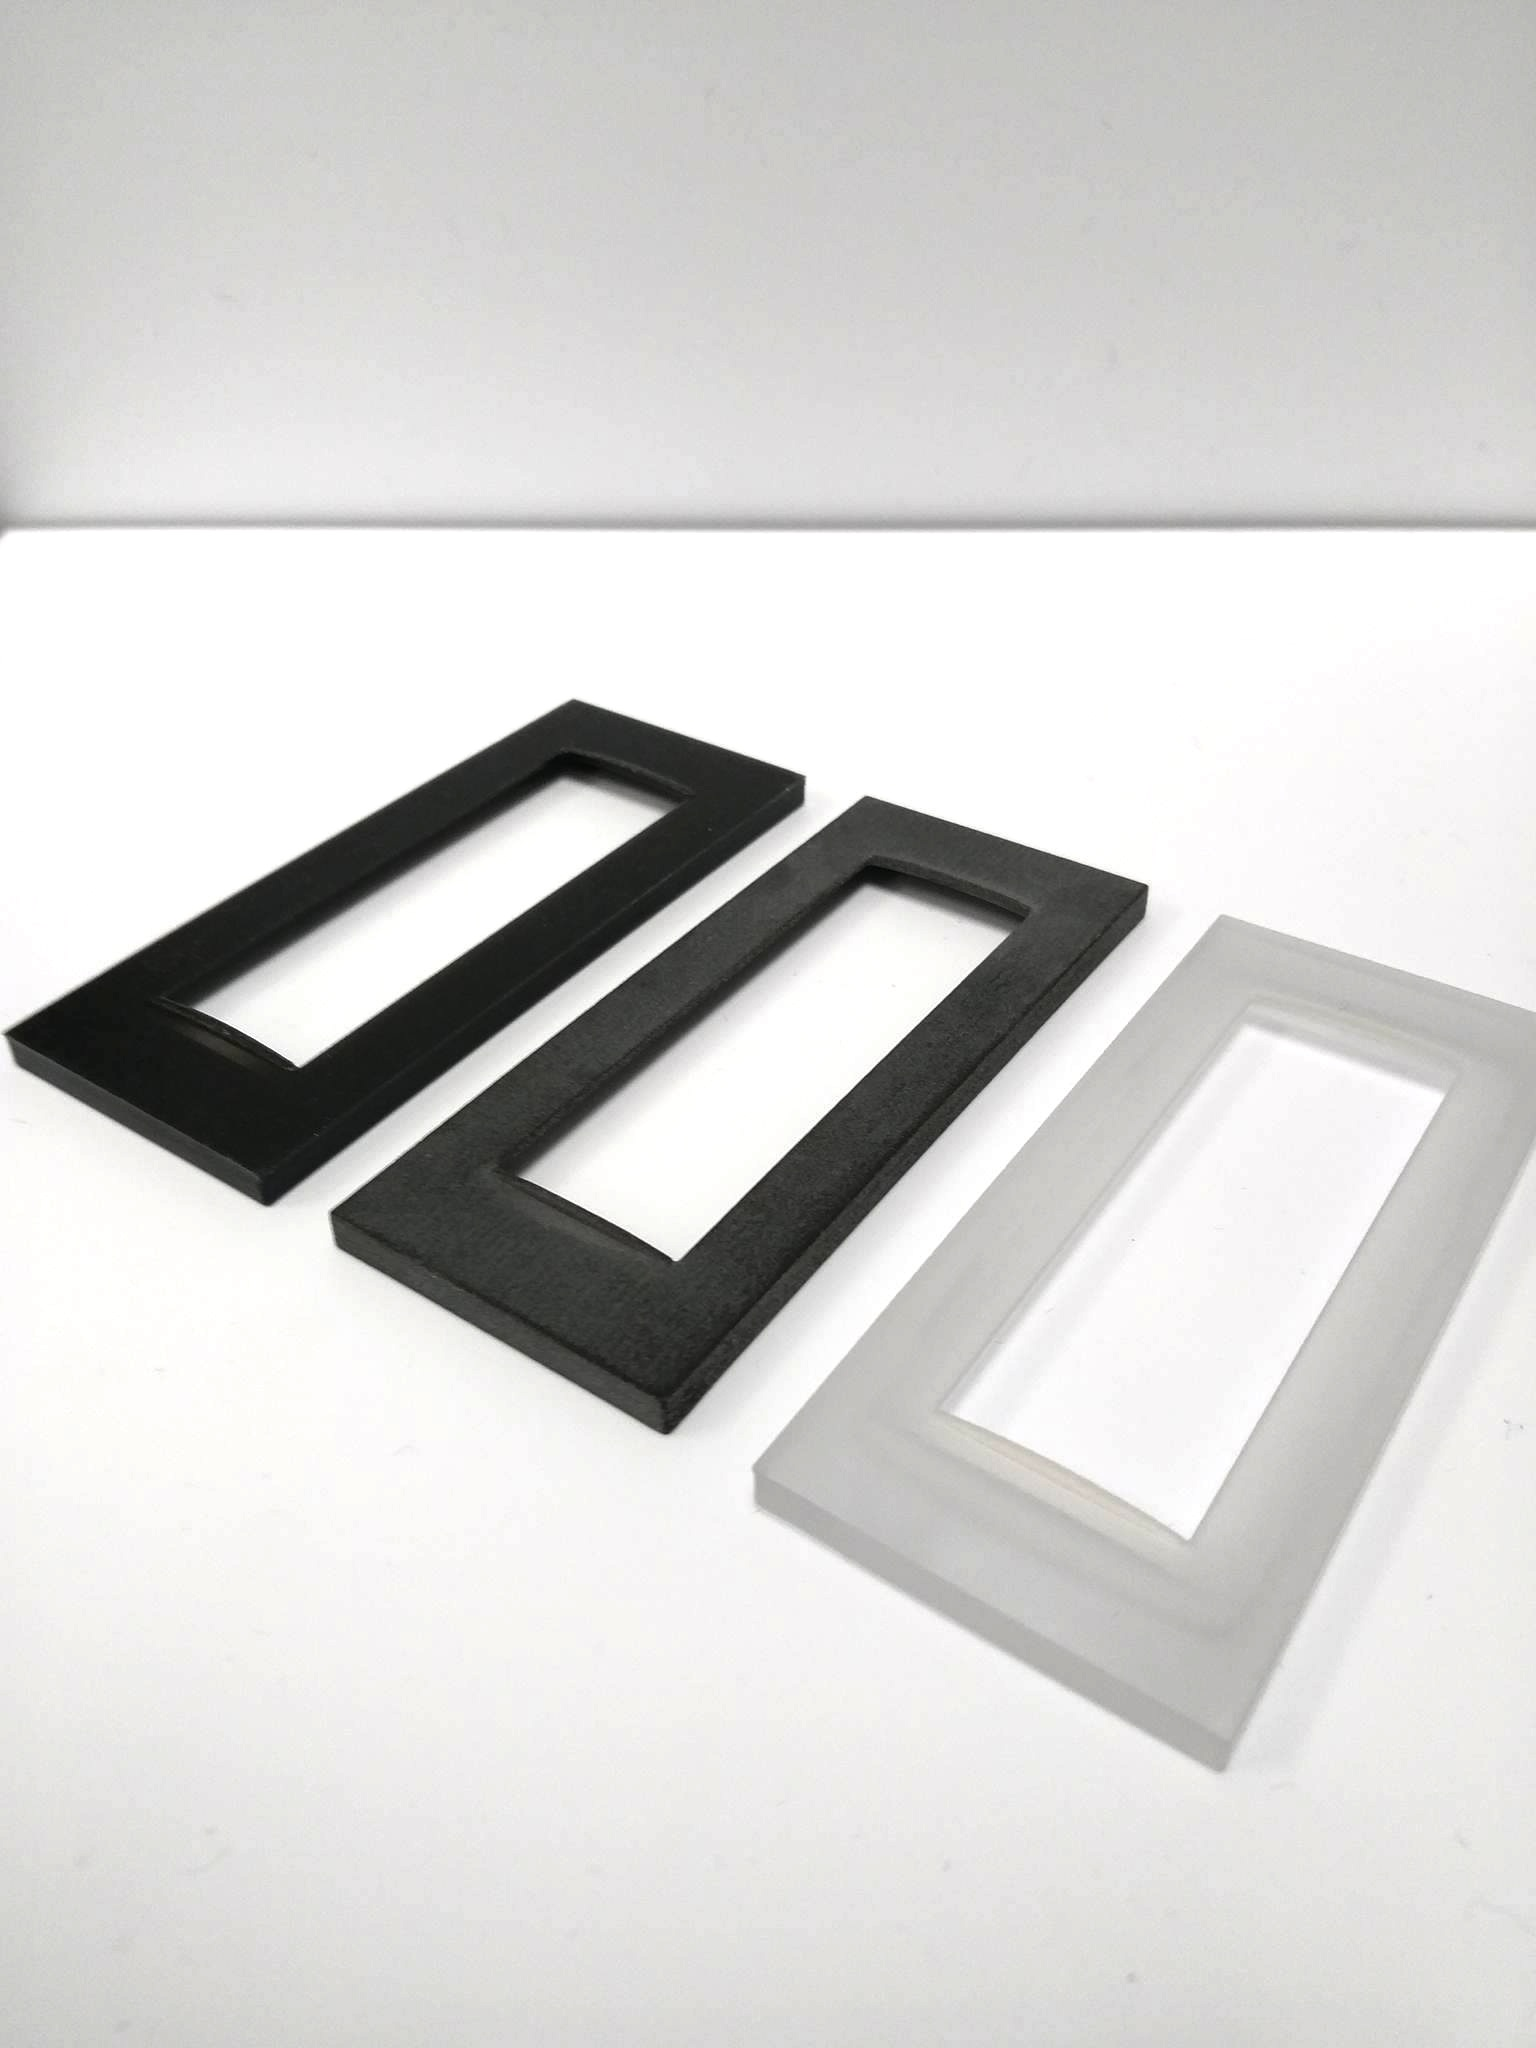 Carbon-filled nylon panels 3D printed with selective laser sintering (SLS).